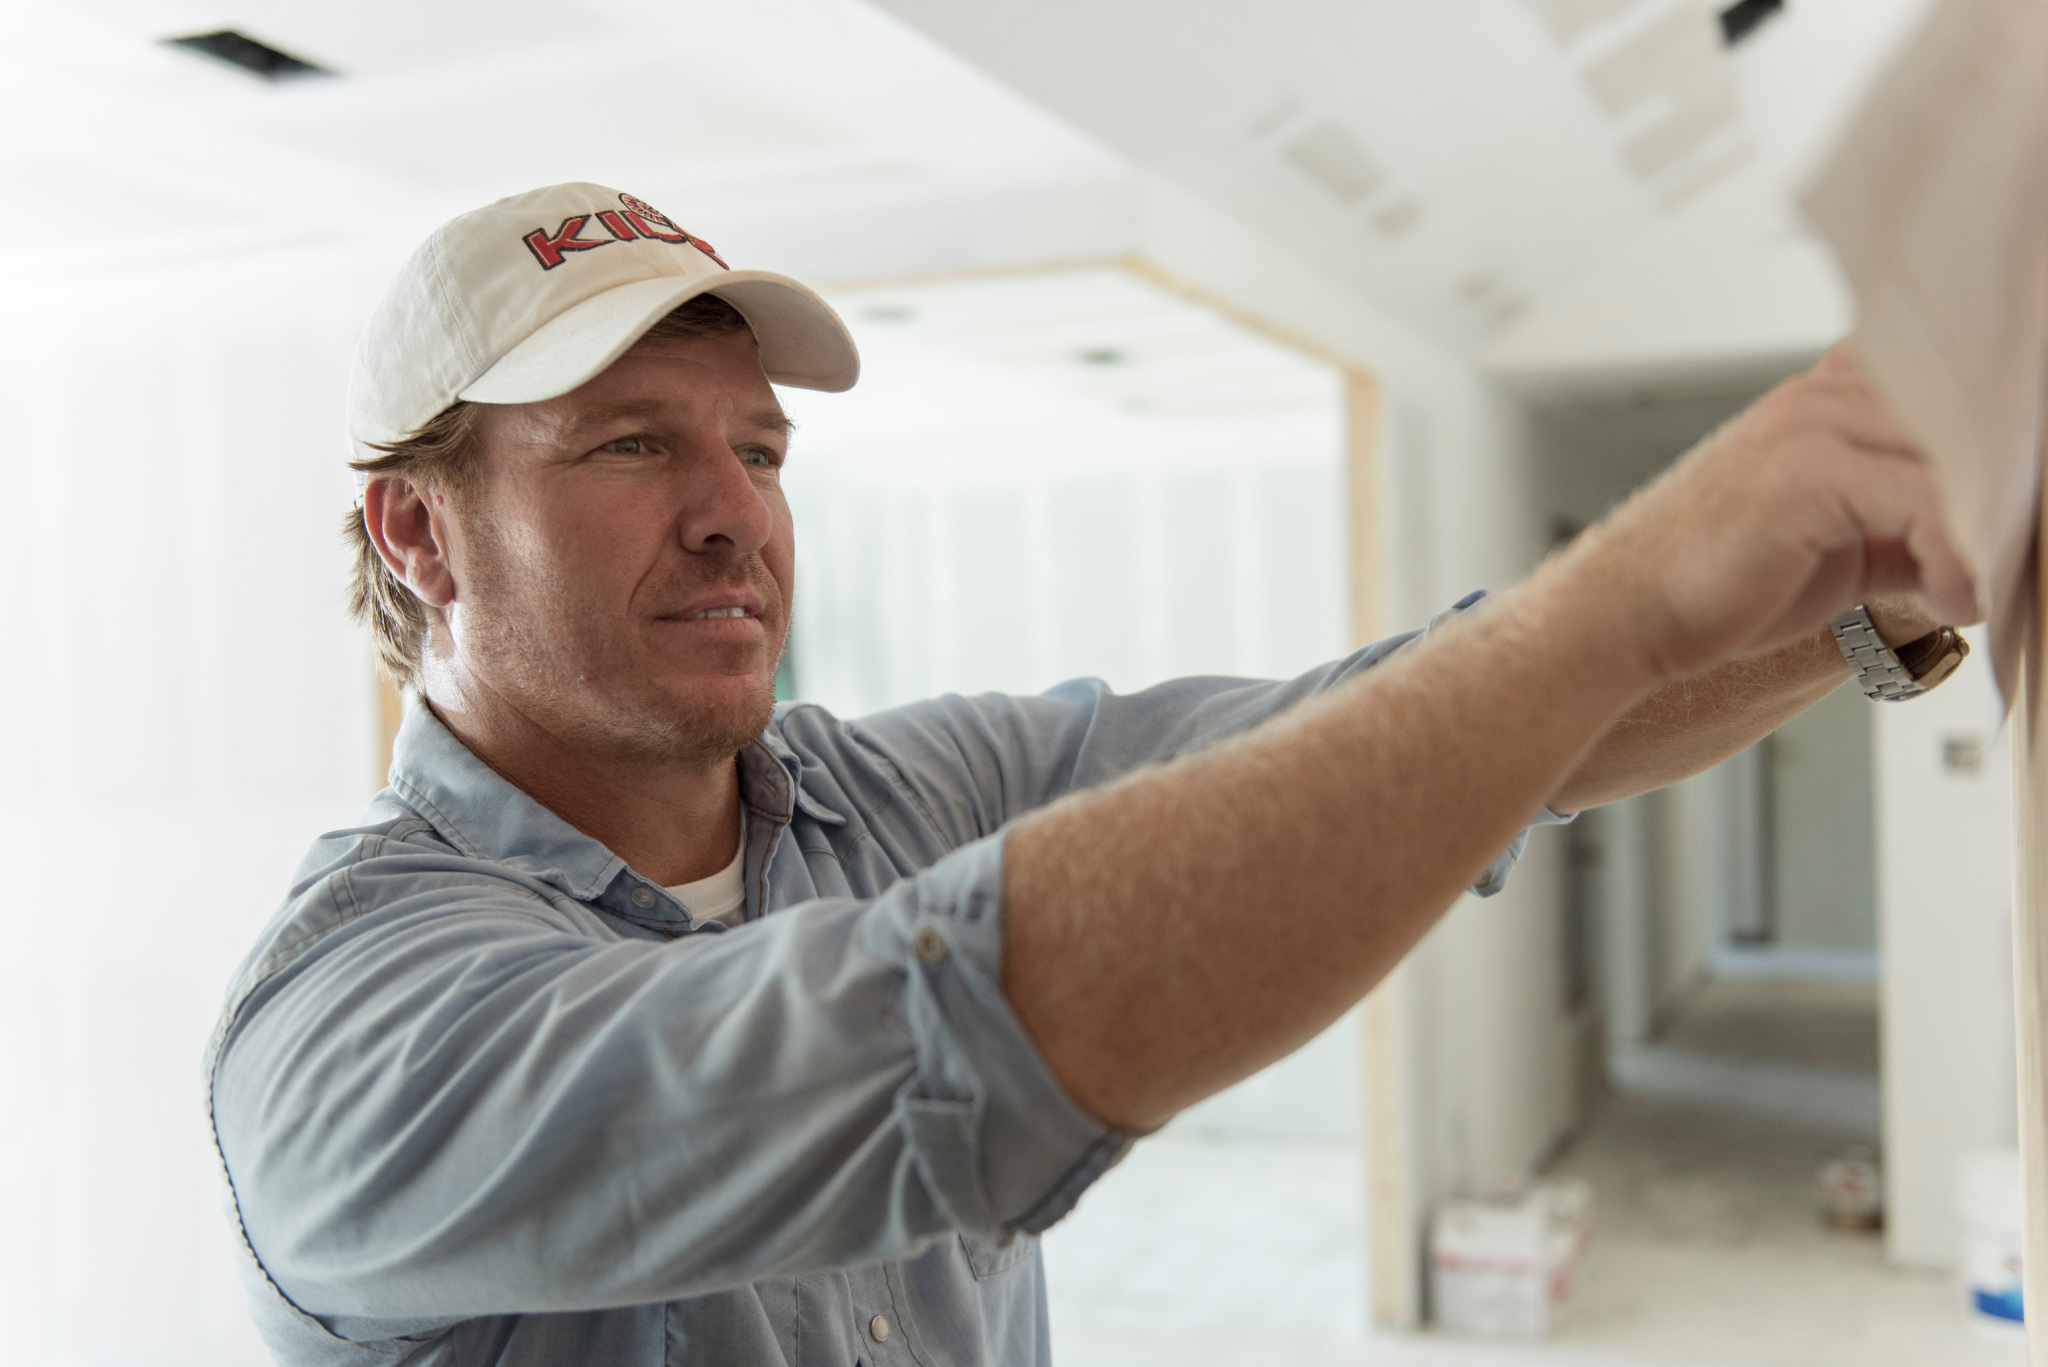 Chip Gaines with Kilz brand primer